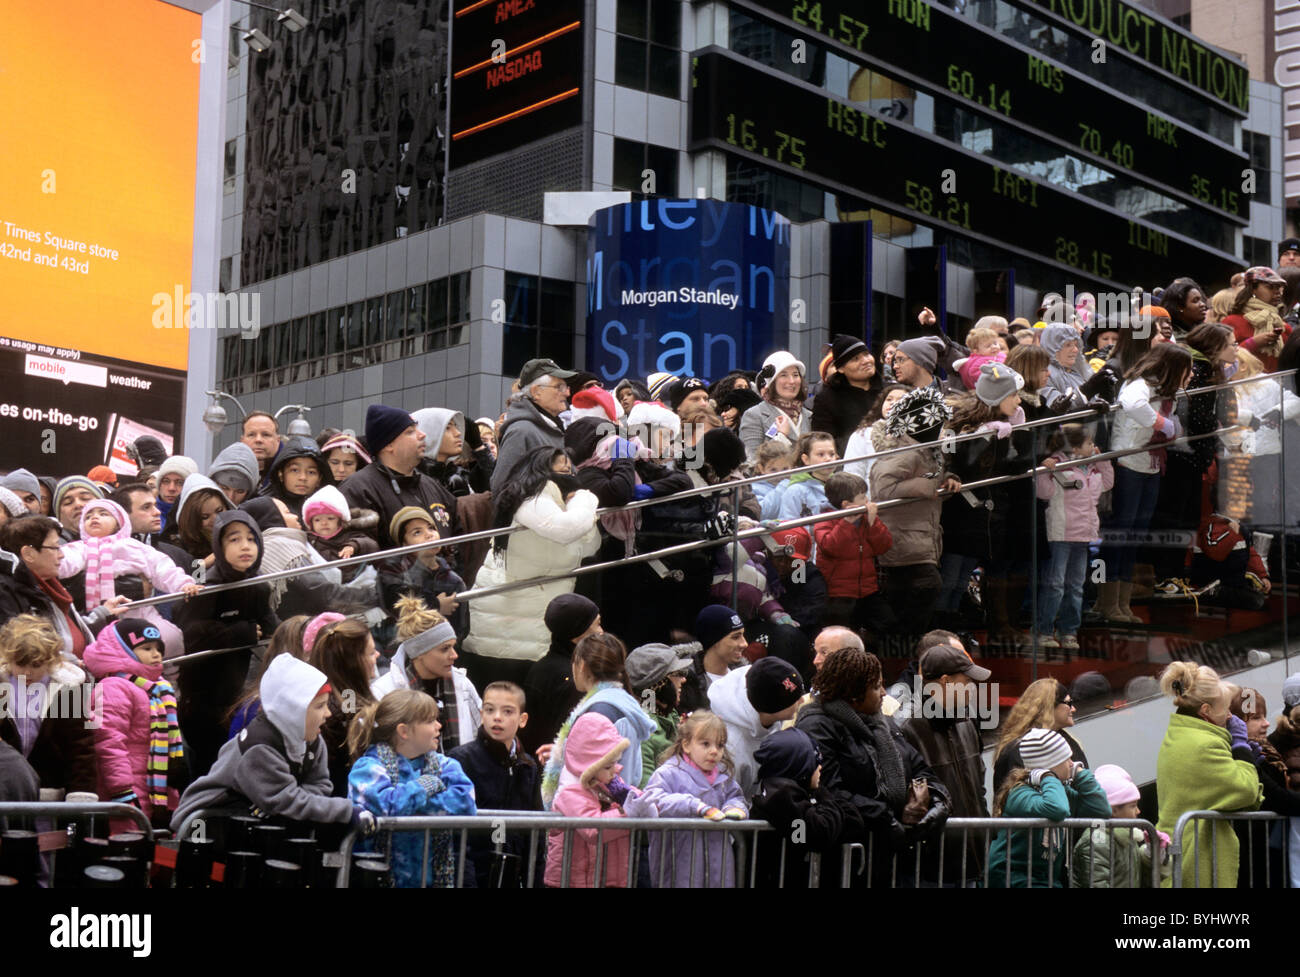 New York City Times Square and Broadway Crowd Watching Macy's Thanksgiving Day Parade USA - Stock Image